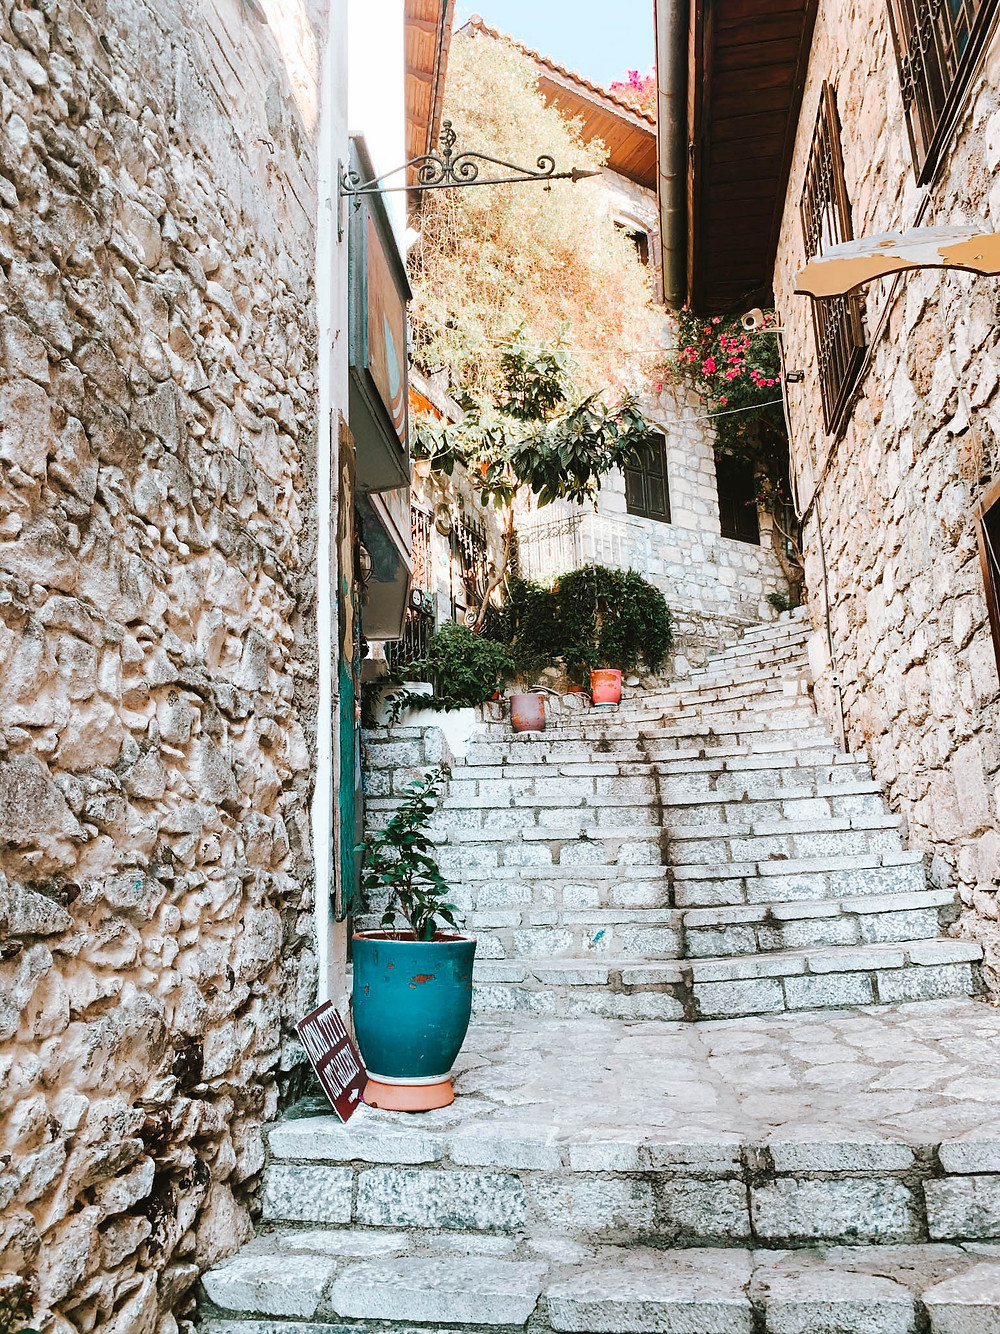 A stairway leading into old town Marmaris